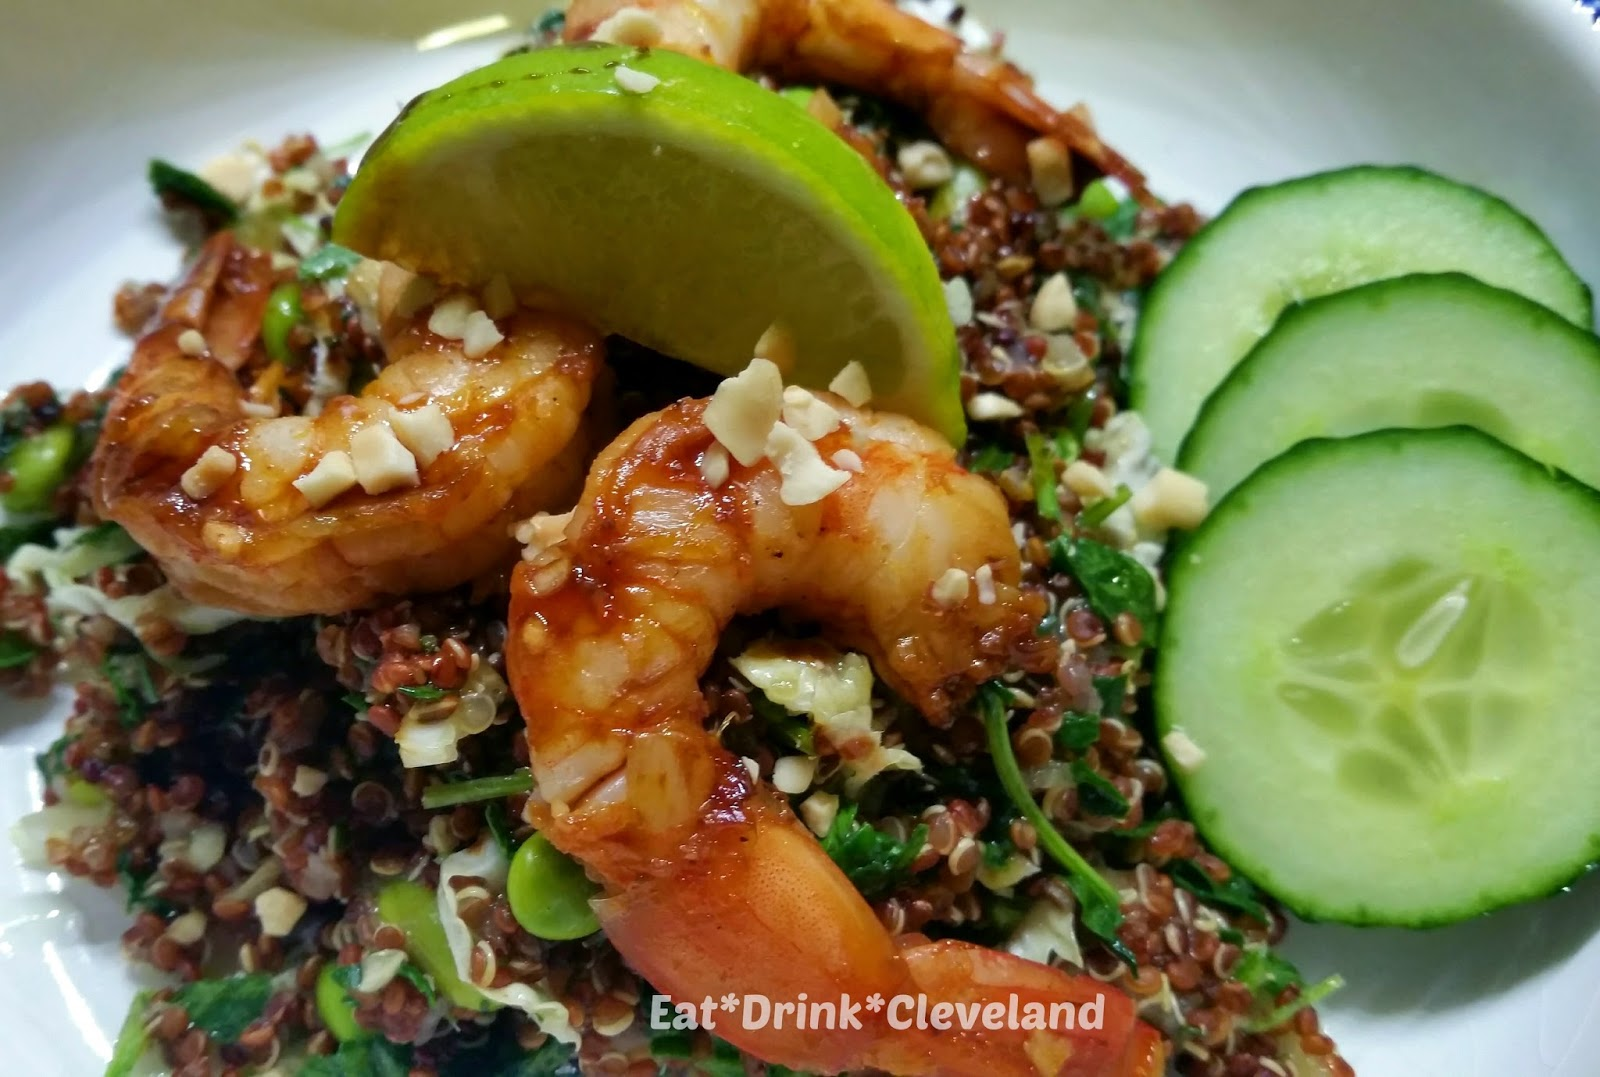 ... Drink*Cleveland: Sweet & Spicy Roasted Shrimp with Asian Quinoa Salad